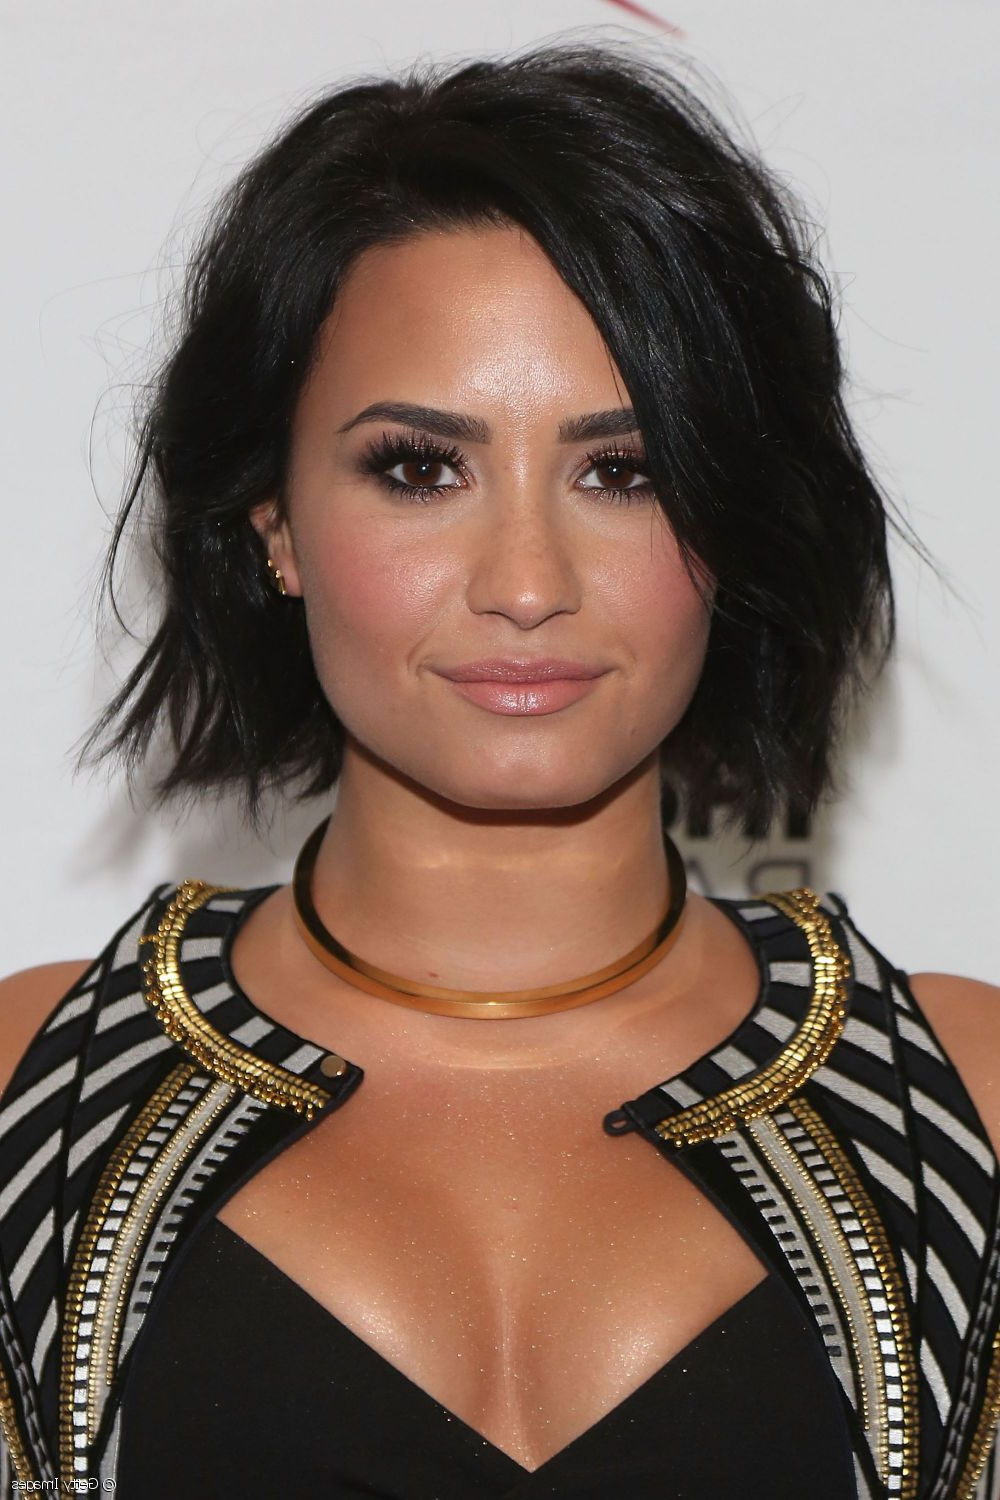 Demi Lovato's Summer Beauty: Wet Look Hair And Bold Lipstick Pertaining To Demi Lovato Short Hairstyles (Gallery 16 of 25)